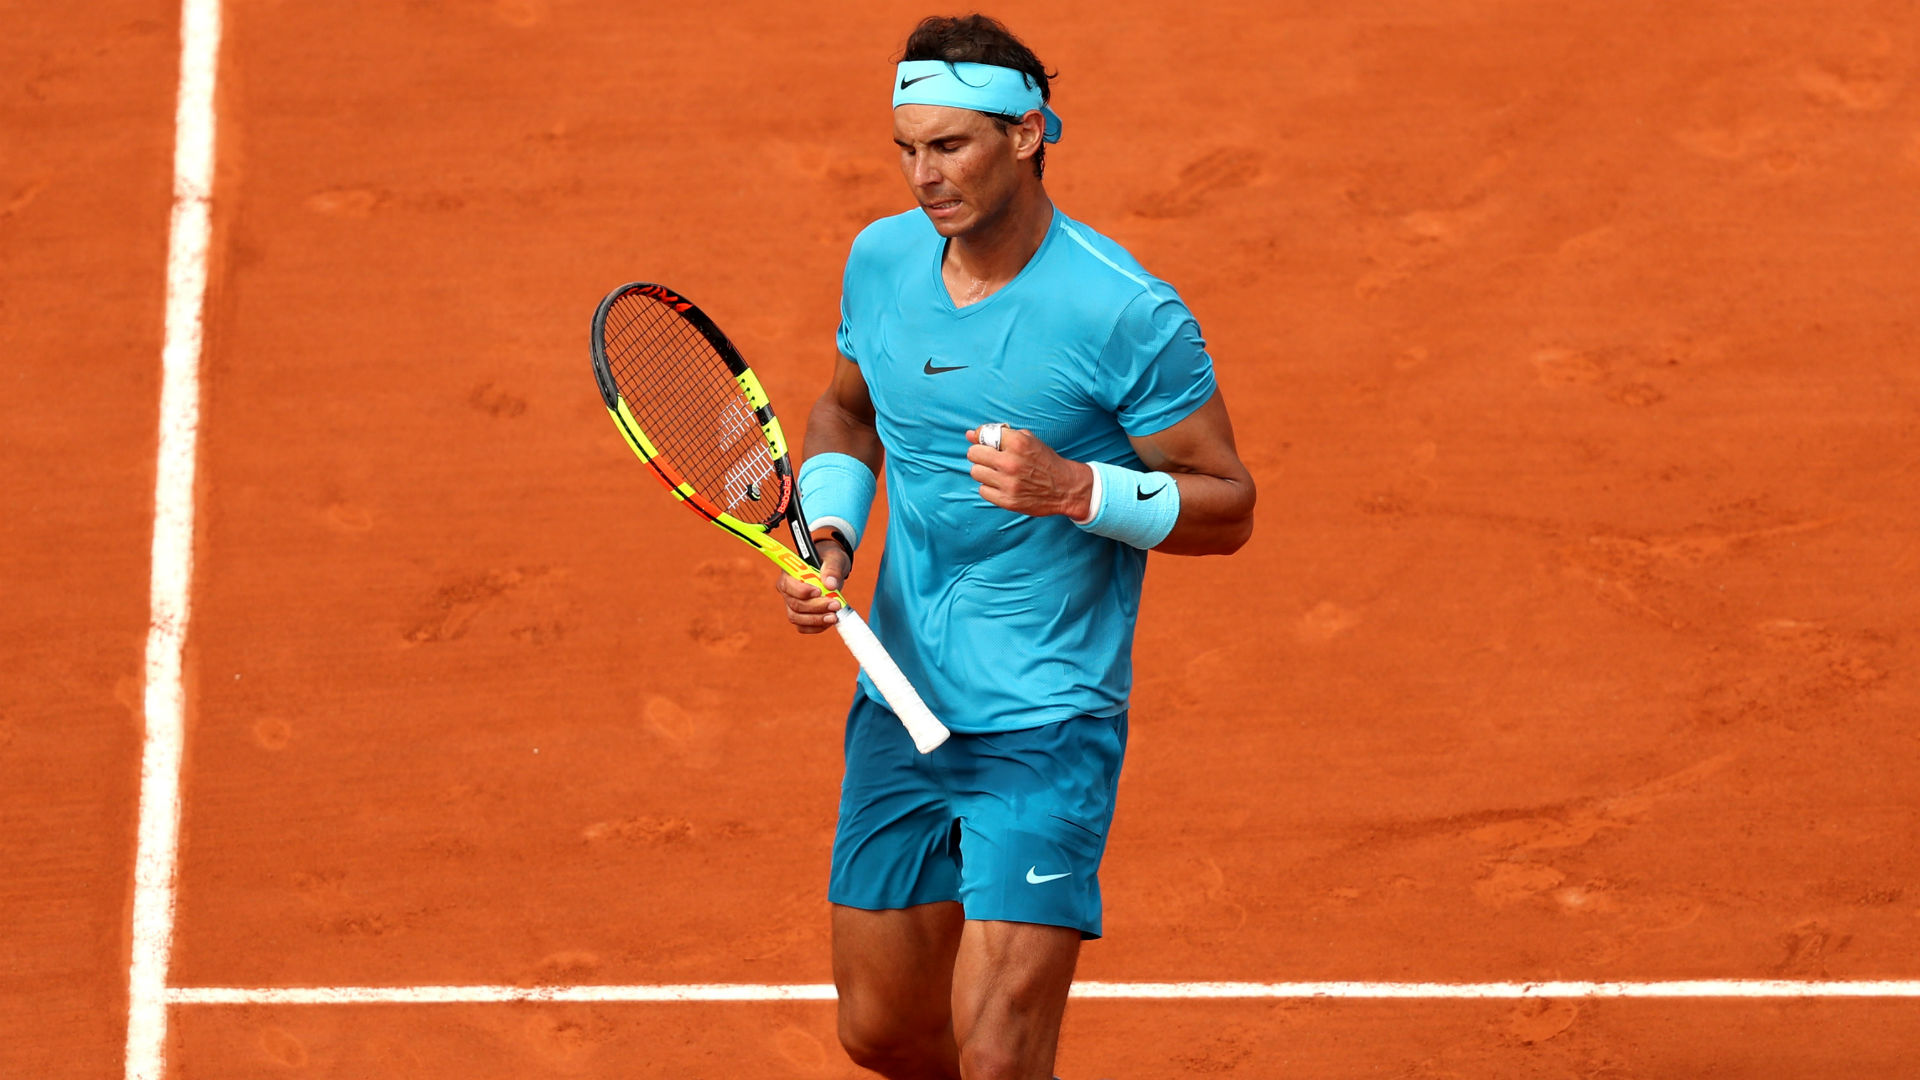 a look at rafael nadal's french open dominance | tennis | sporting news